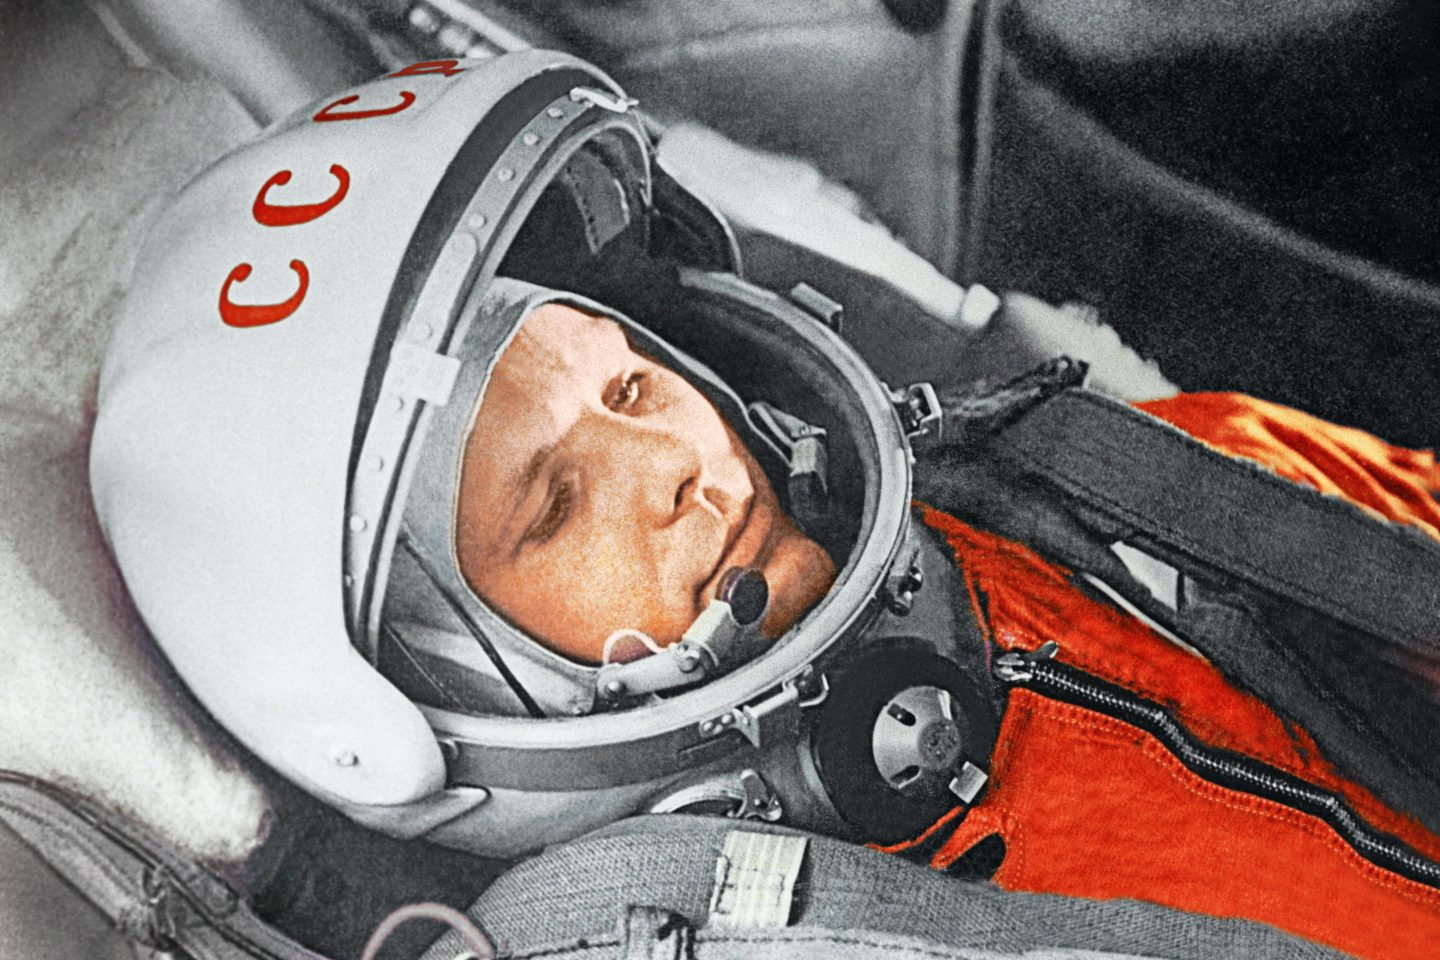 Yuri Gagarin before a space flight aboard the Vostok spacecraft. April 12, 1961.